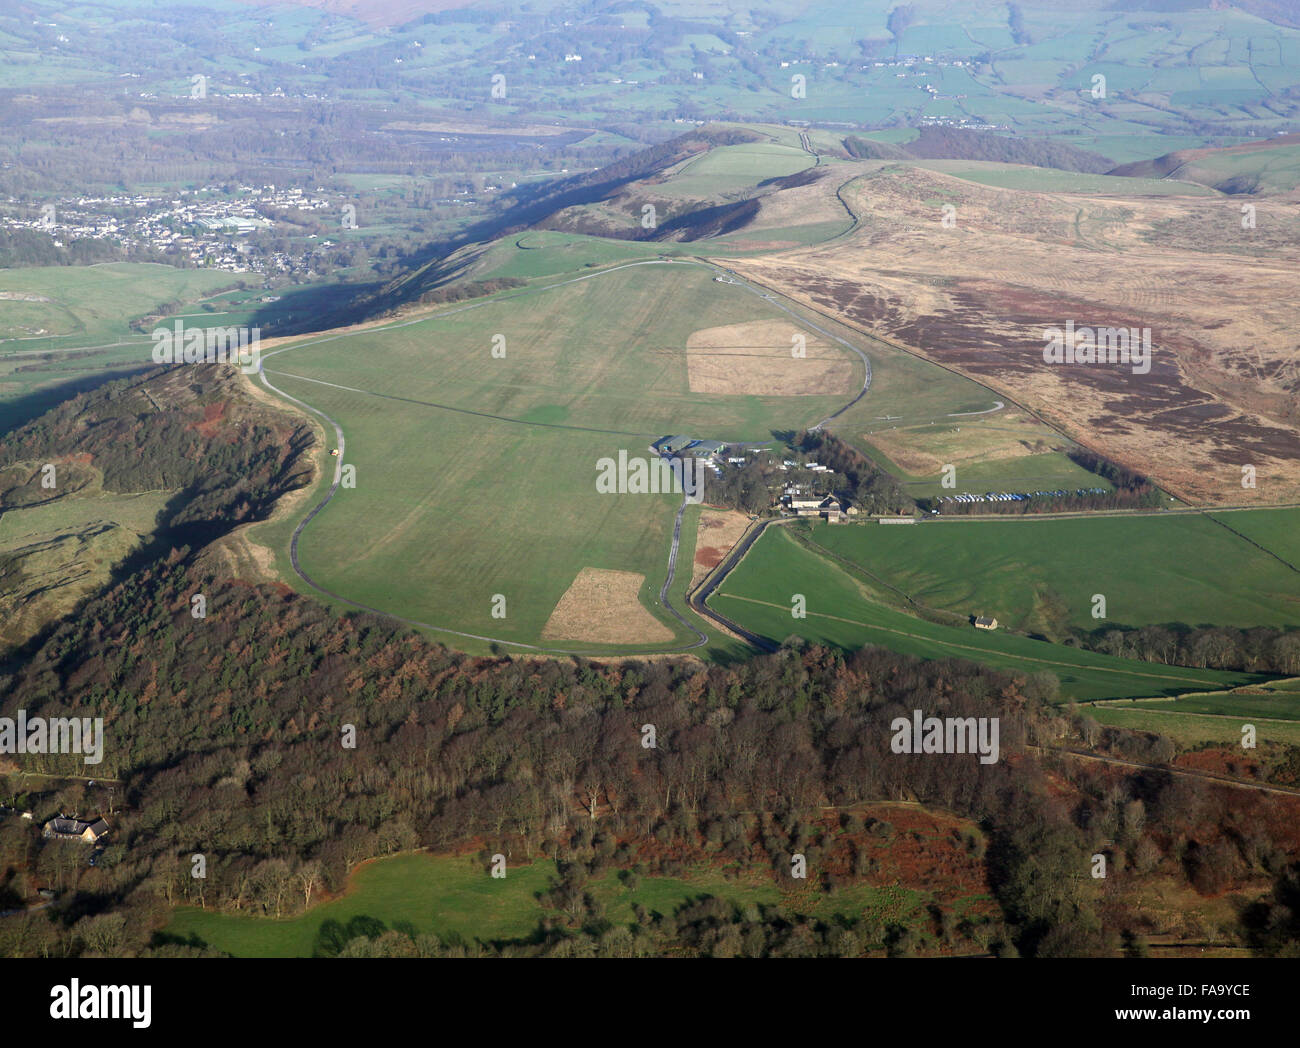 aerial view of Camphill gliding site near Buxton, Derbyshire, UK - Stock Image